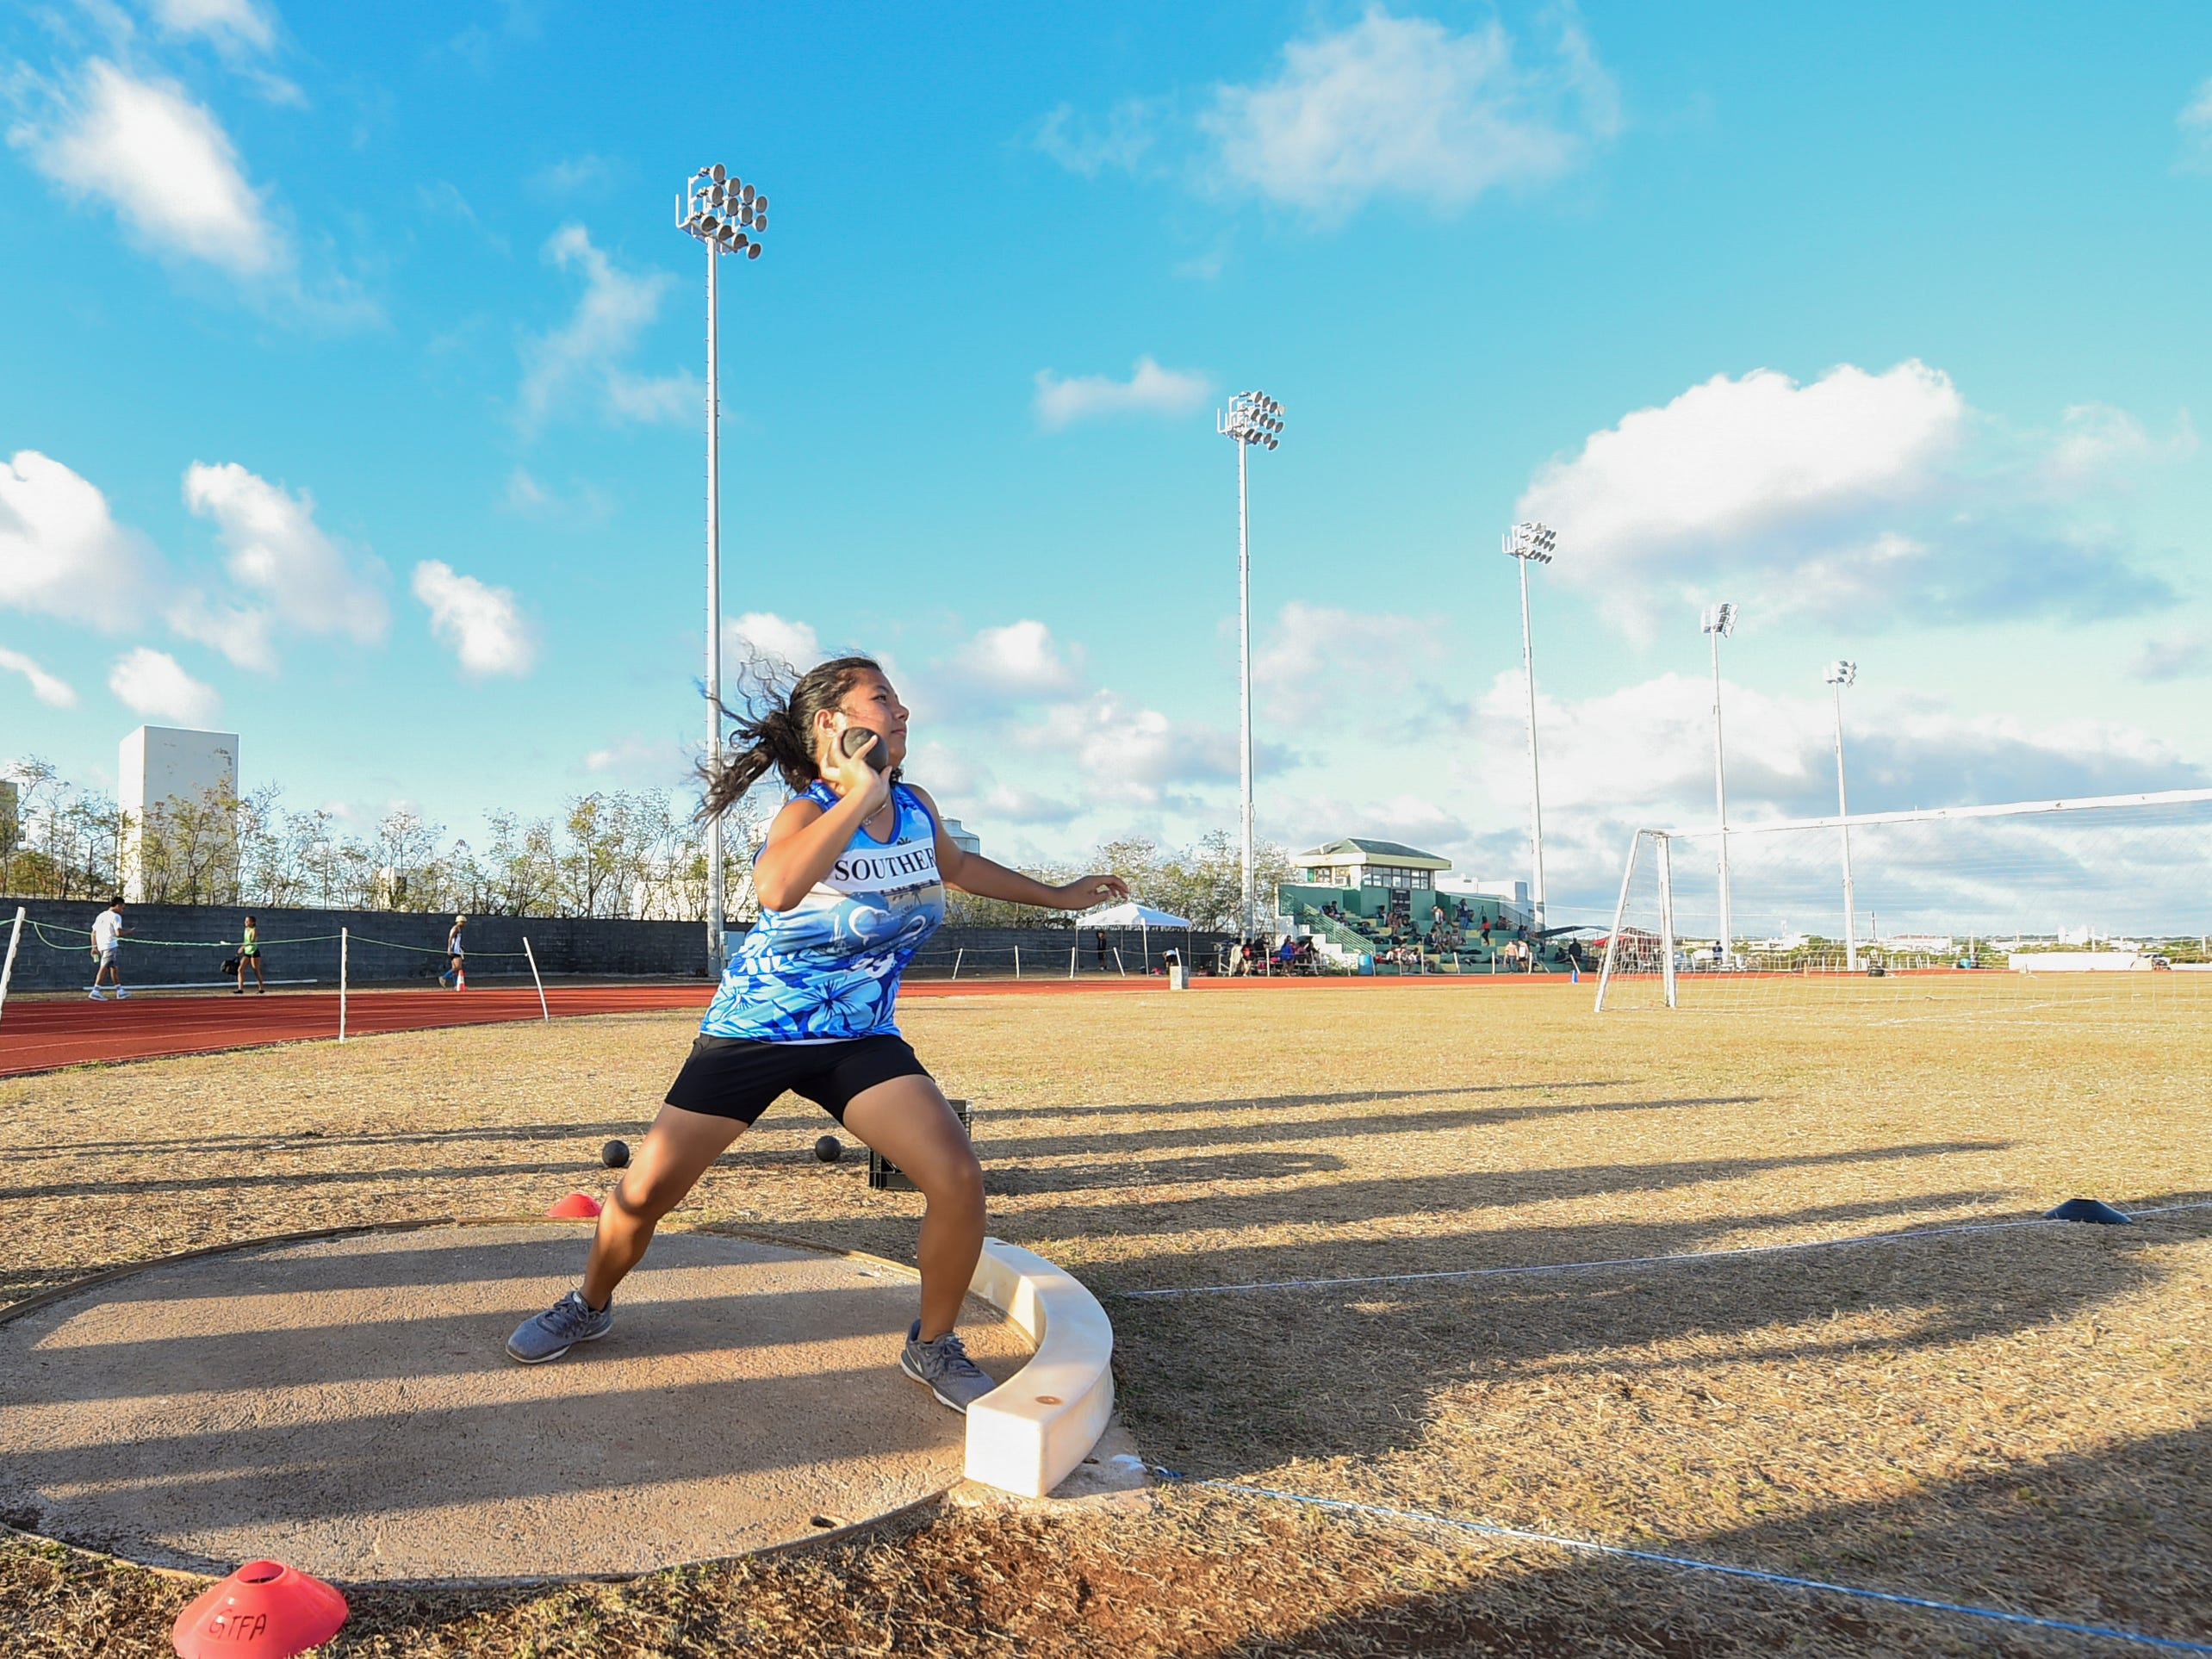 Southern High's Bailey Cruz, 17, competes in the Shot Put 4kg Varsity during a IIAAG Track and Field meet at John F. Kennedy Ramsey Field in Tamuning on May 10, 2019.